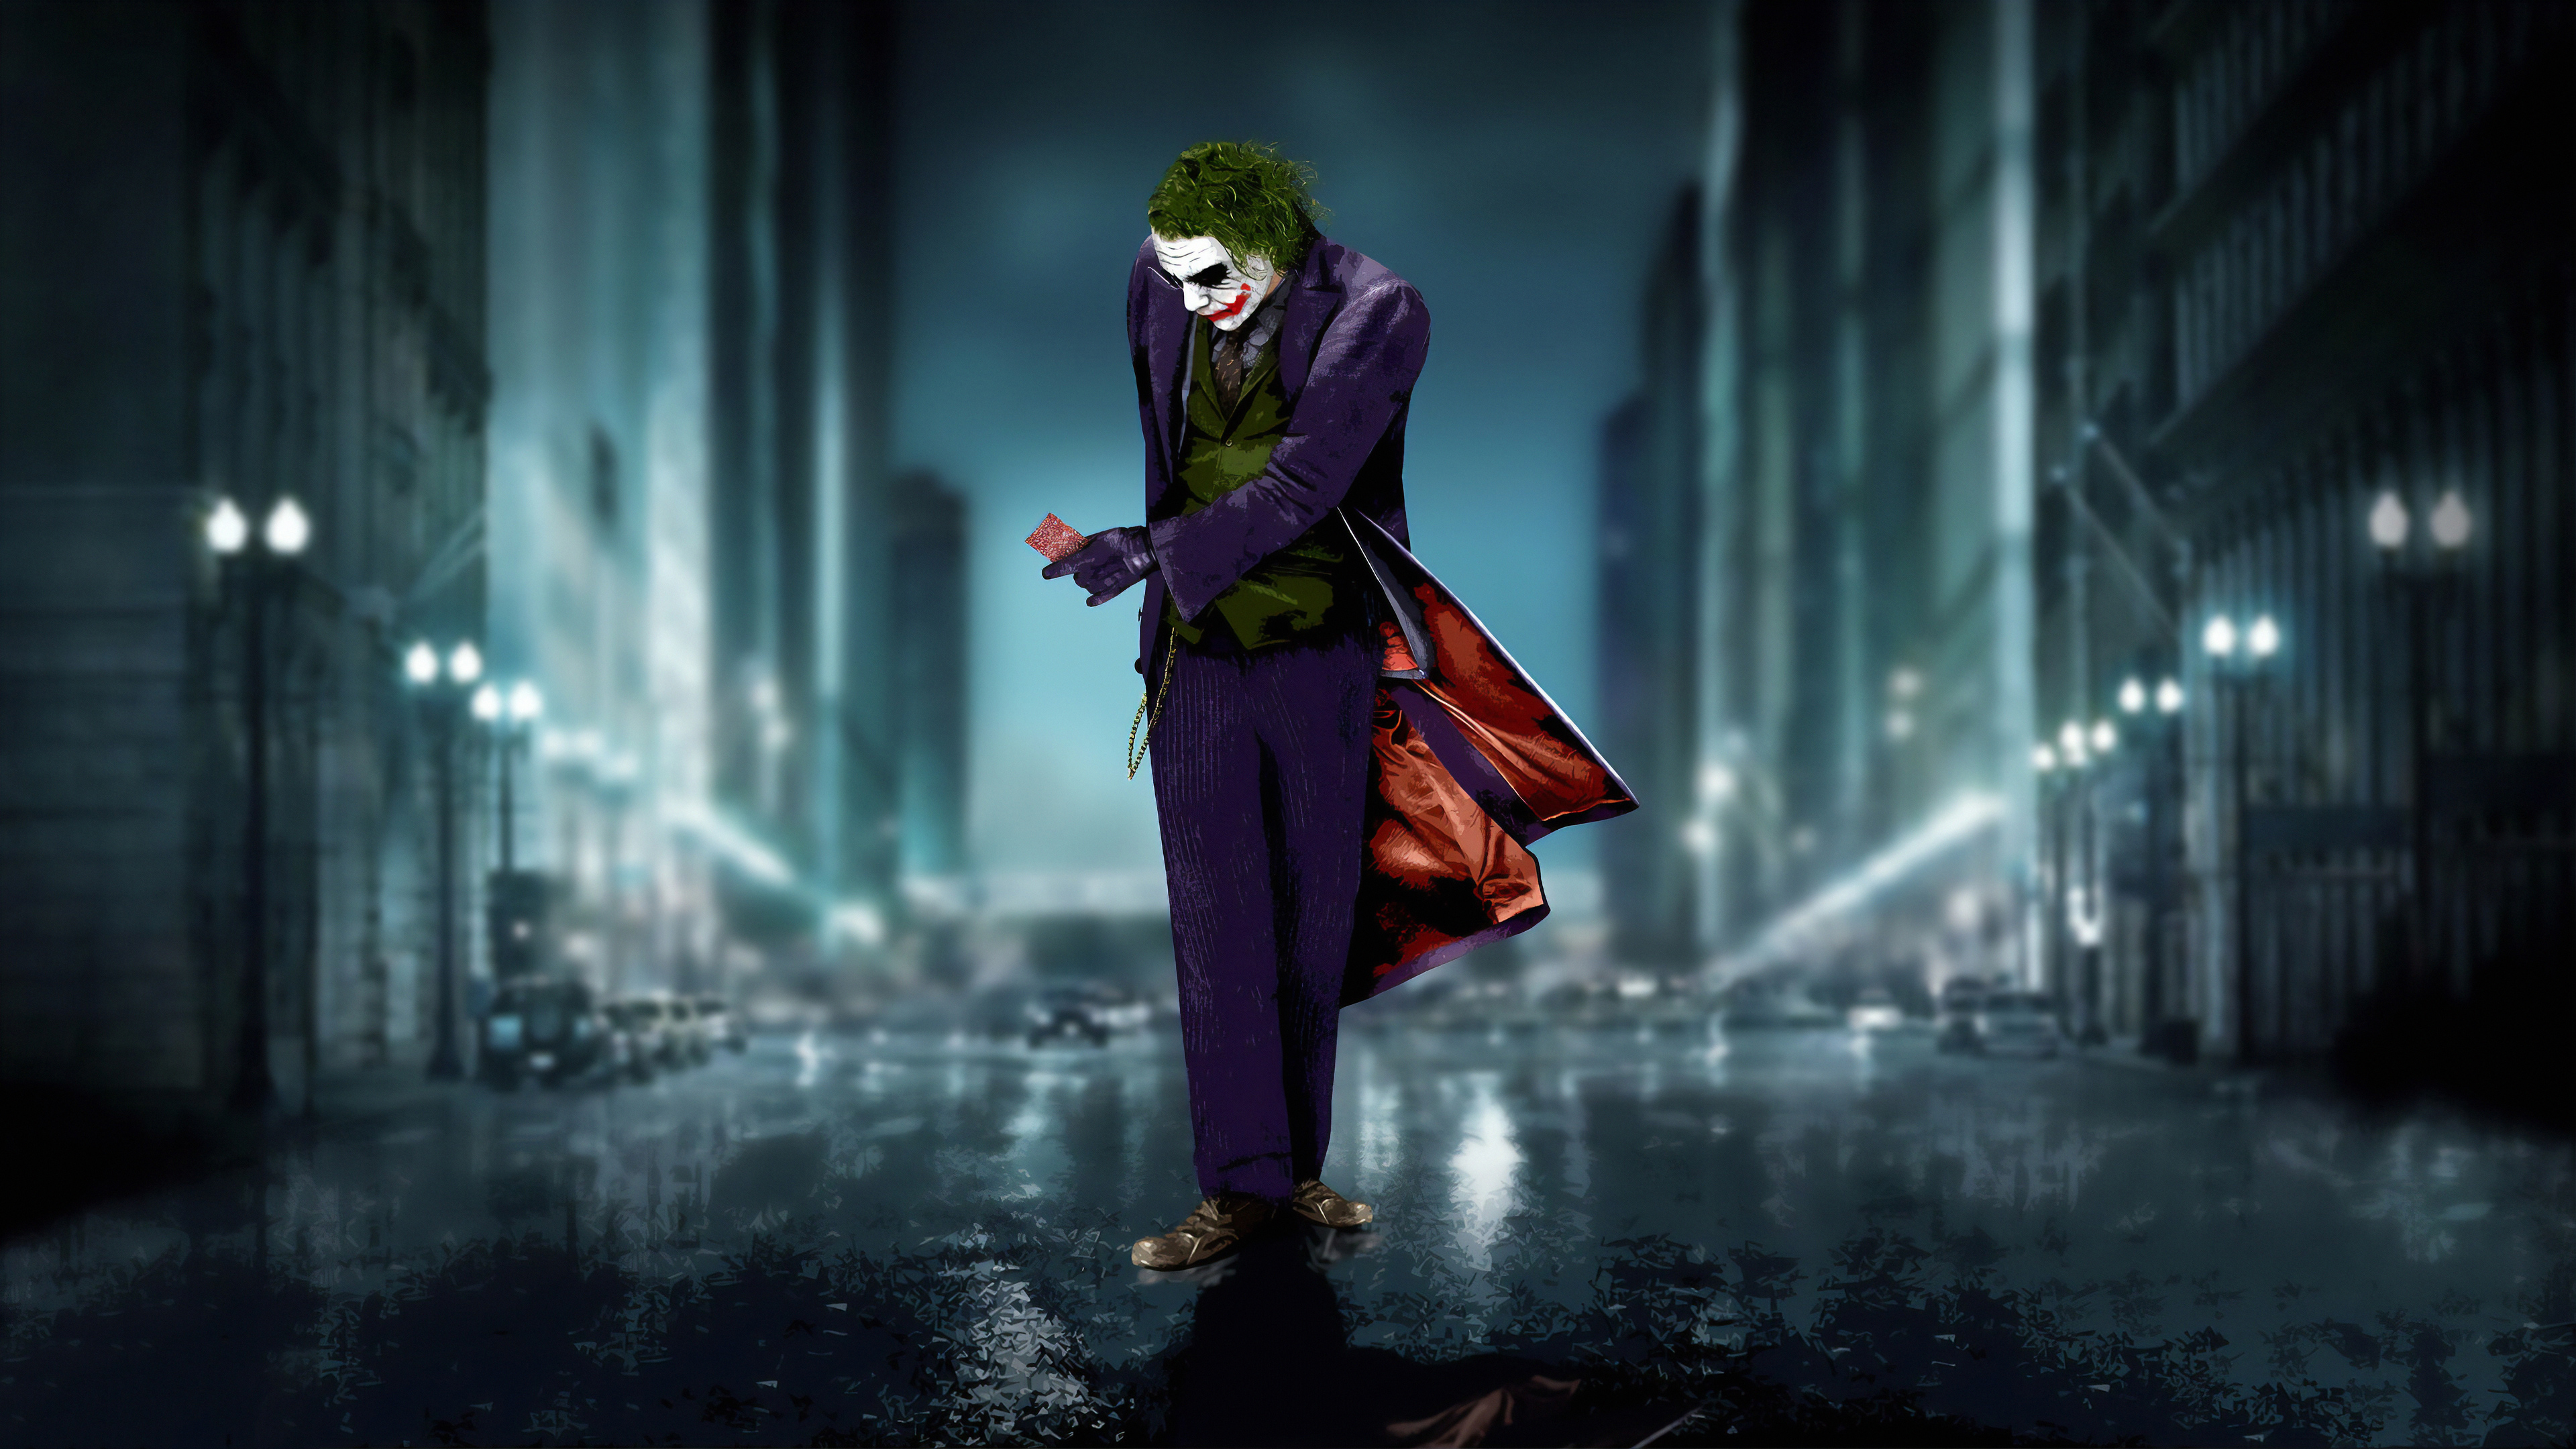 320x240 Heath Ledger Joker Apple Iphone Ipod Touch Galaxy Ace Hd 4k Wallpapers Images Backgrounds Photos And Pictures